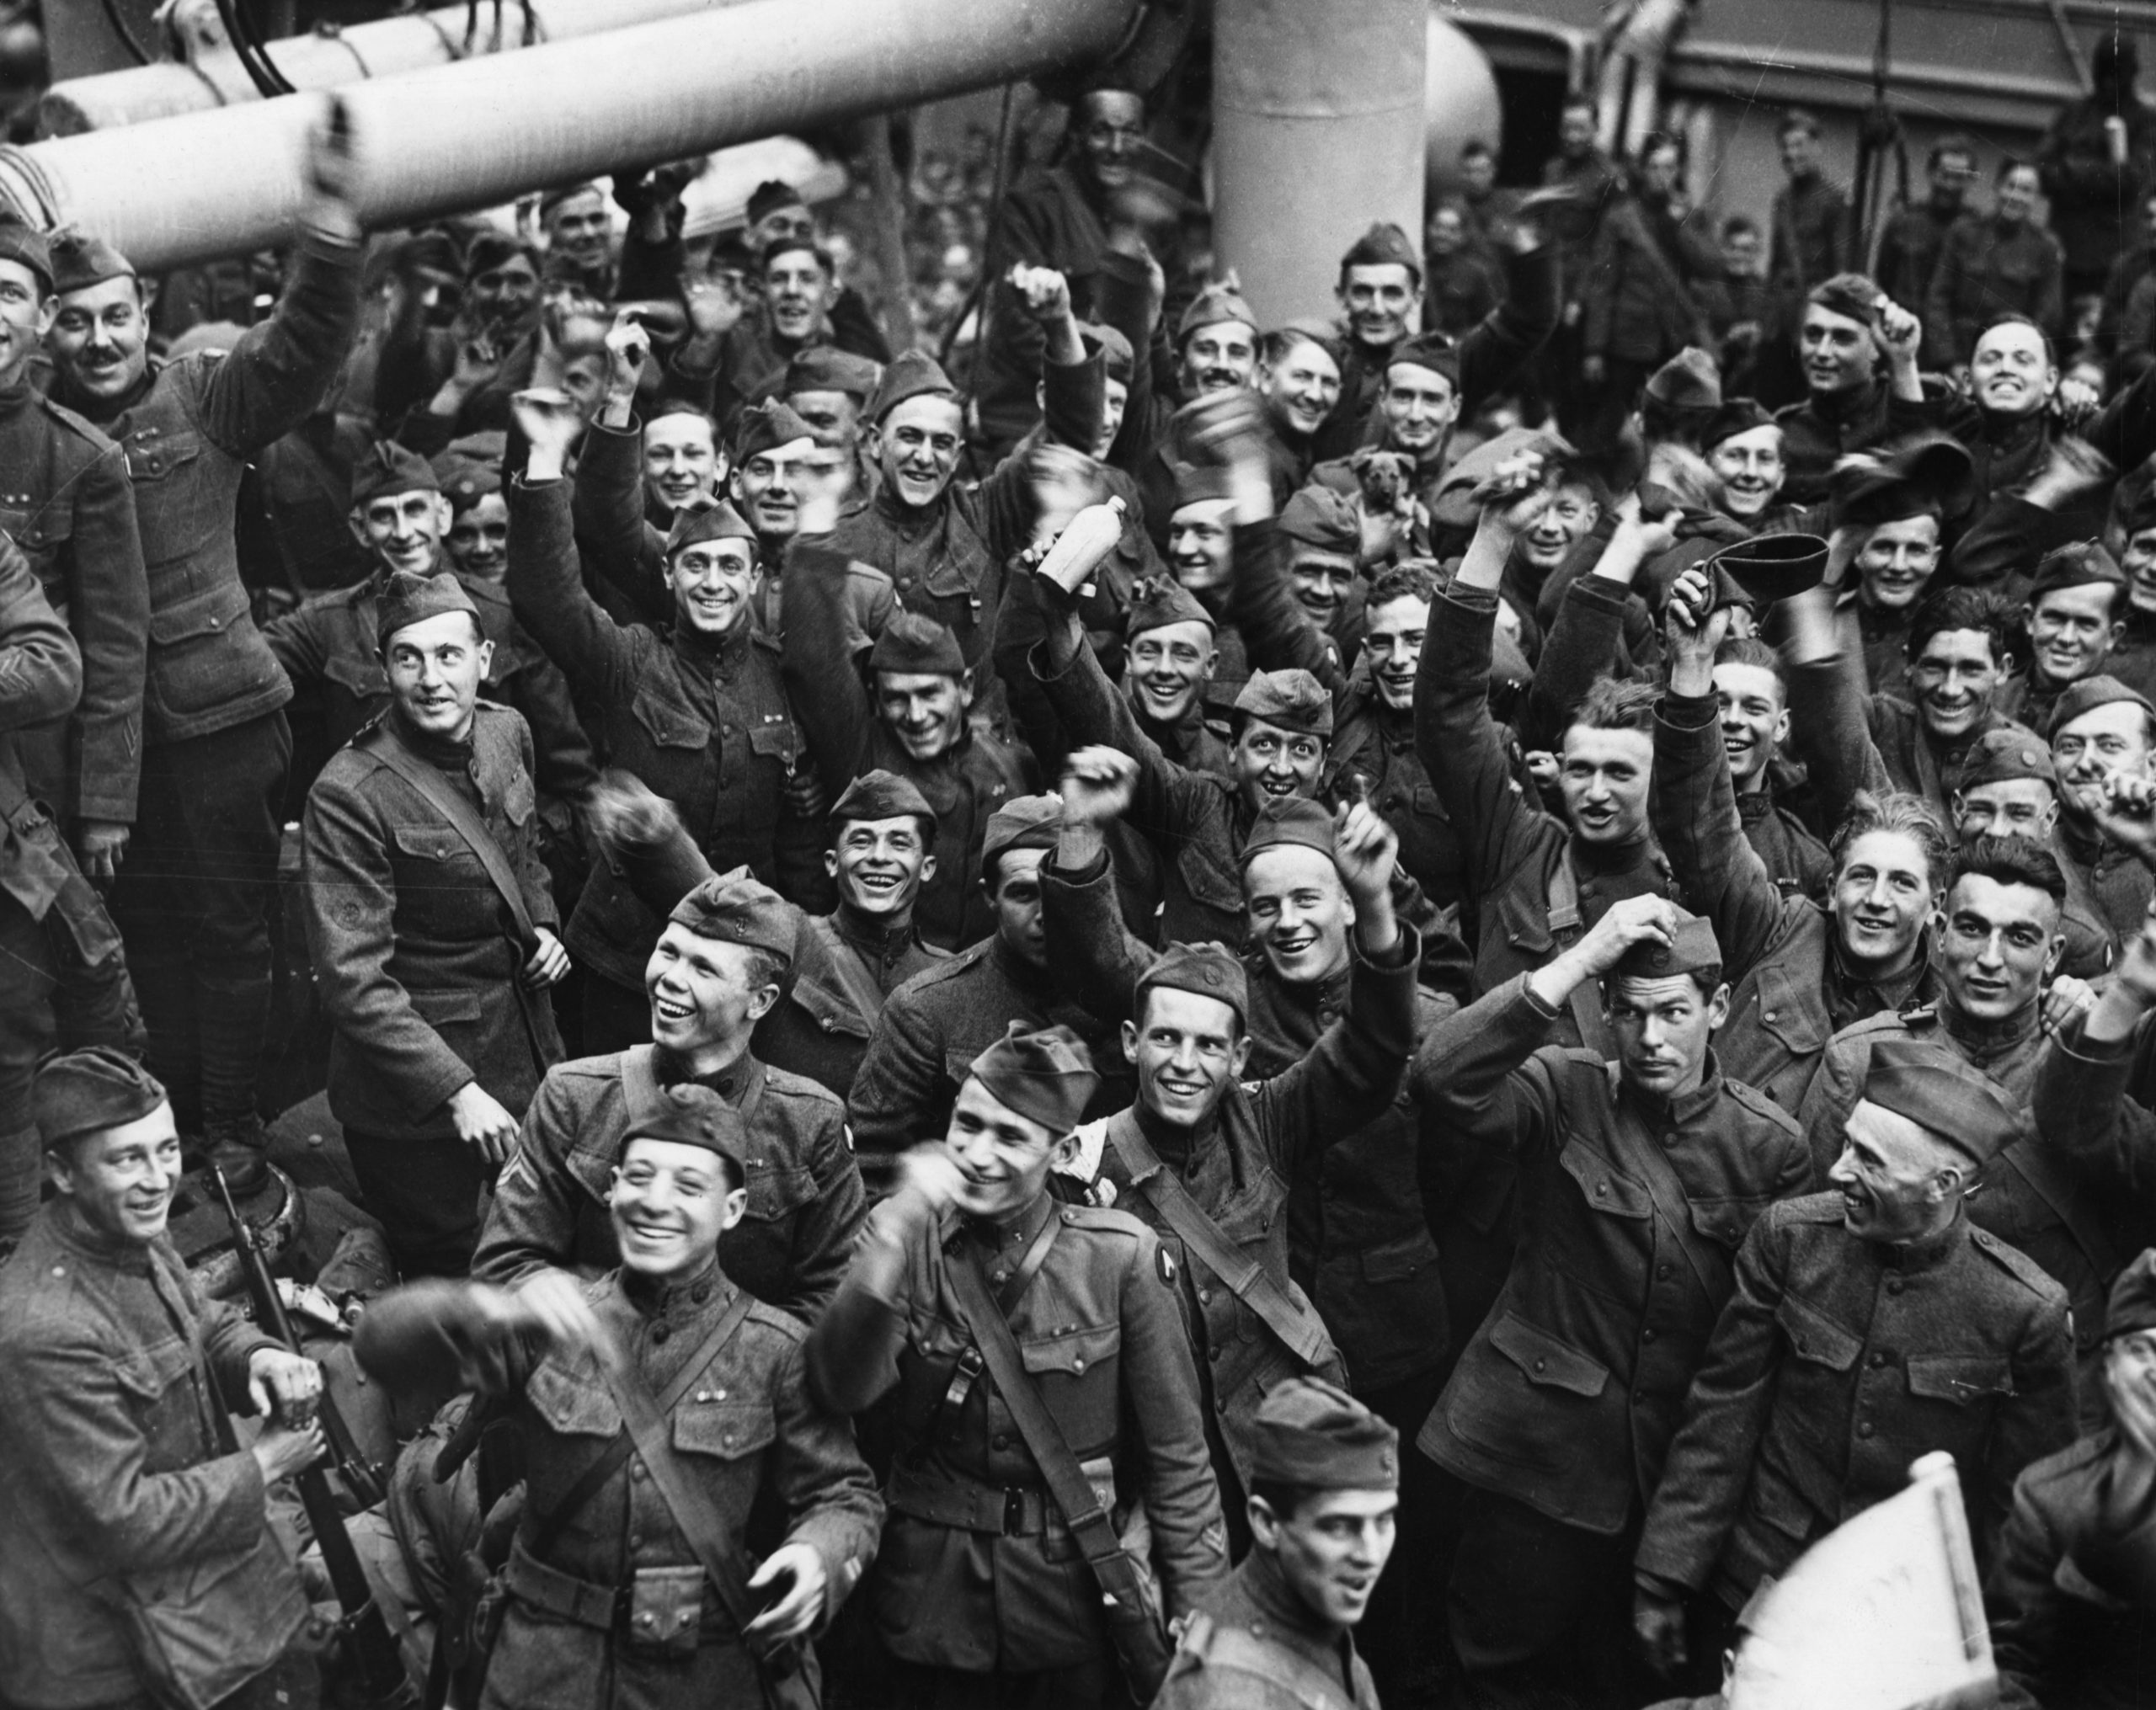 From Armistice Day to Veterans Day: How History Has Led us to Honor All Heroes of Our Nation